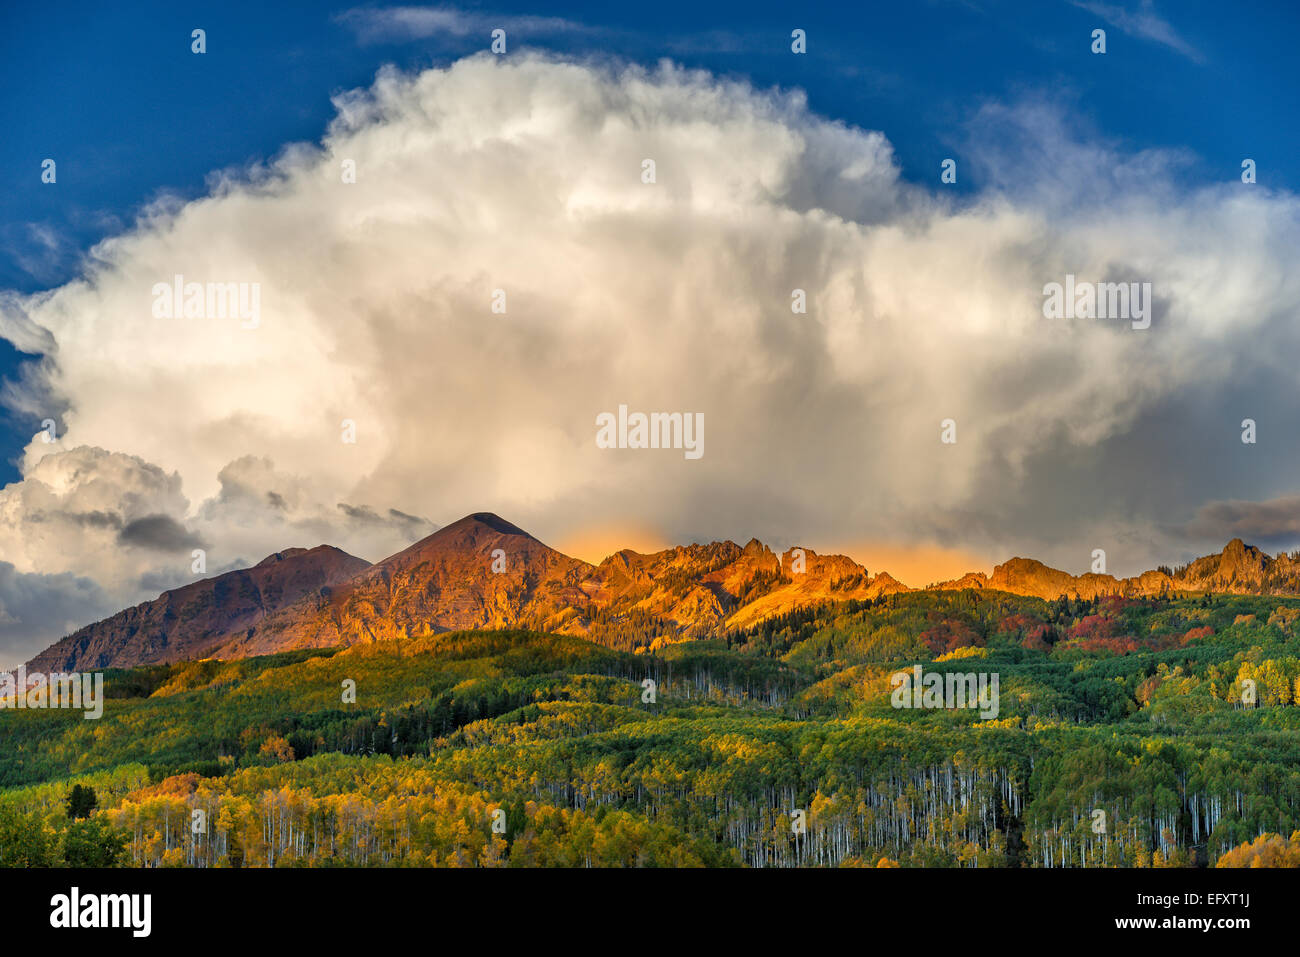 Gunnison National Forest, CO: Billowing clouds over the Ruby Range in early fall - Stock Image